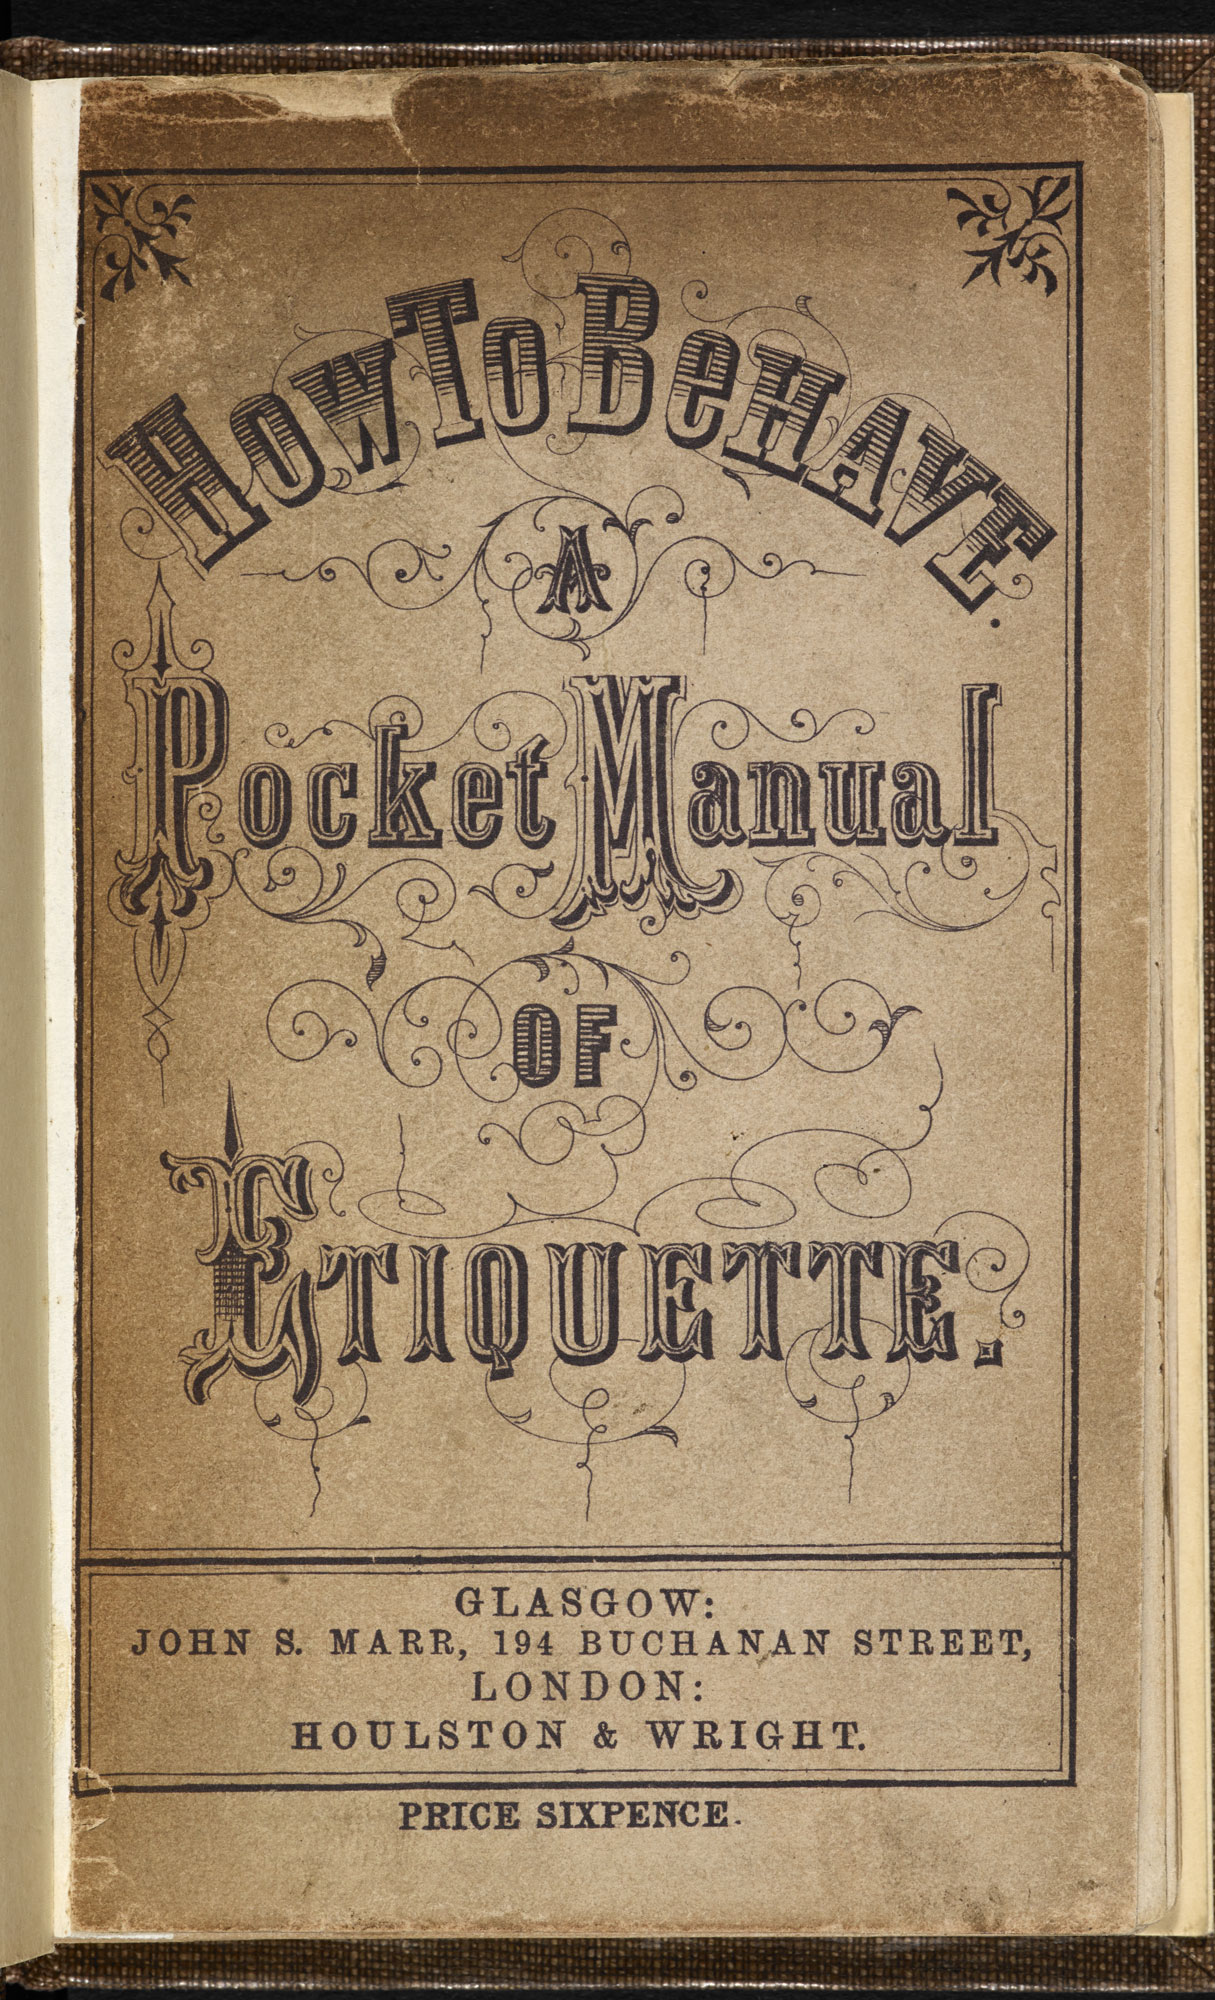 How to Behave: A Pocket Manual of Etiquette [page: front cover]